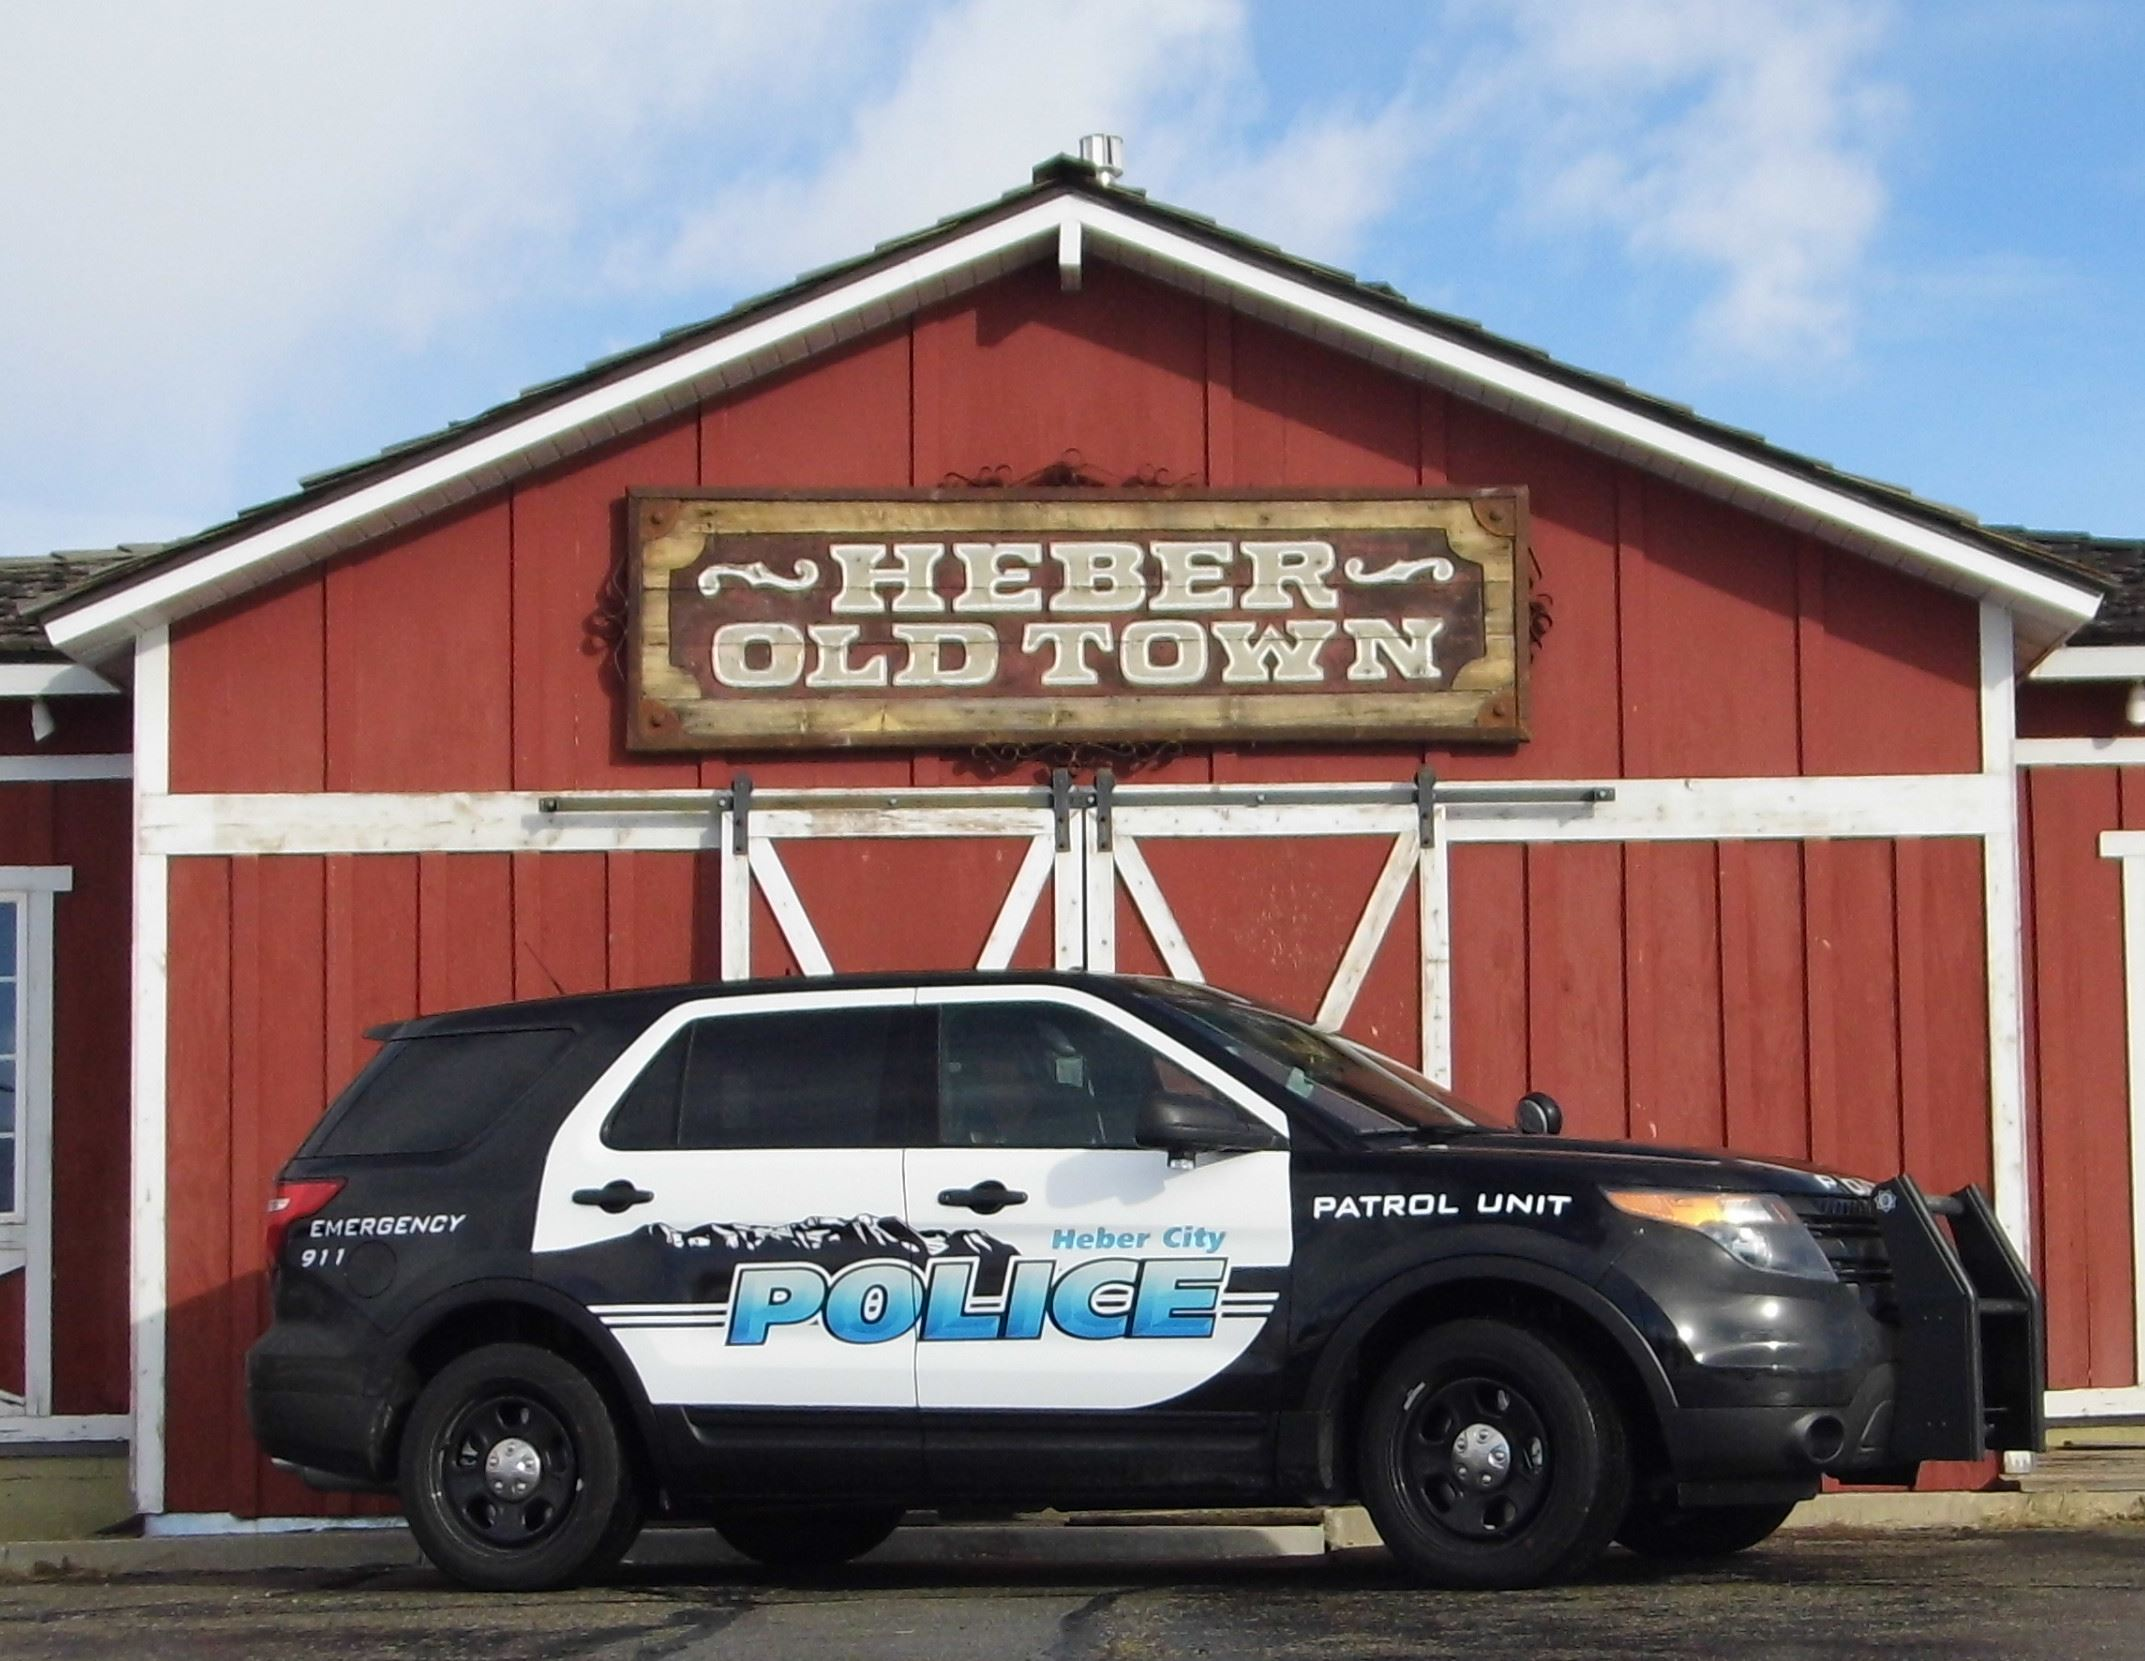 Heber City Police vehicle in front of red barn